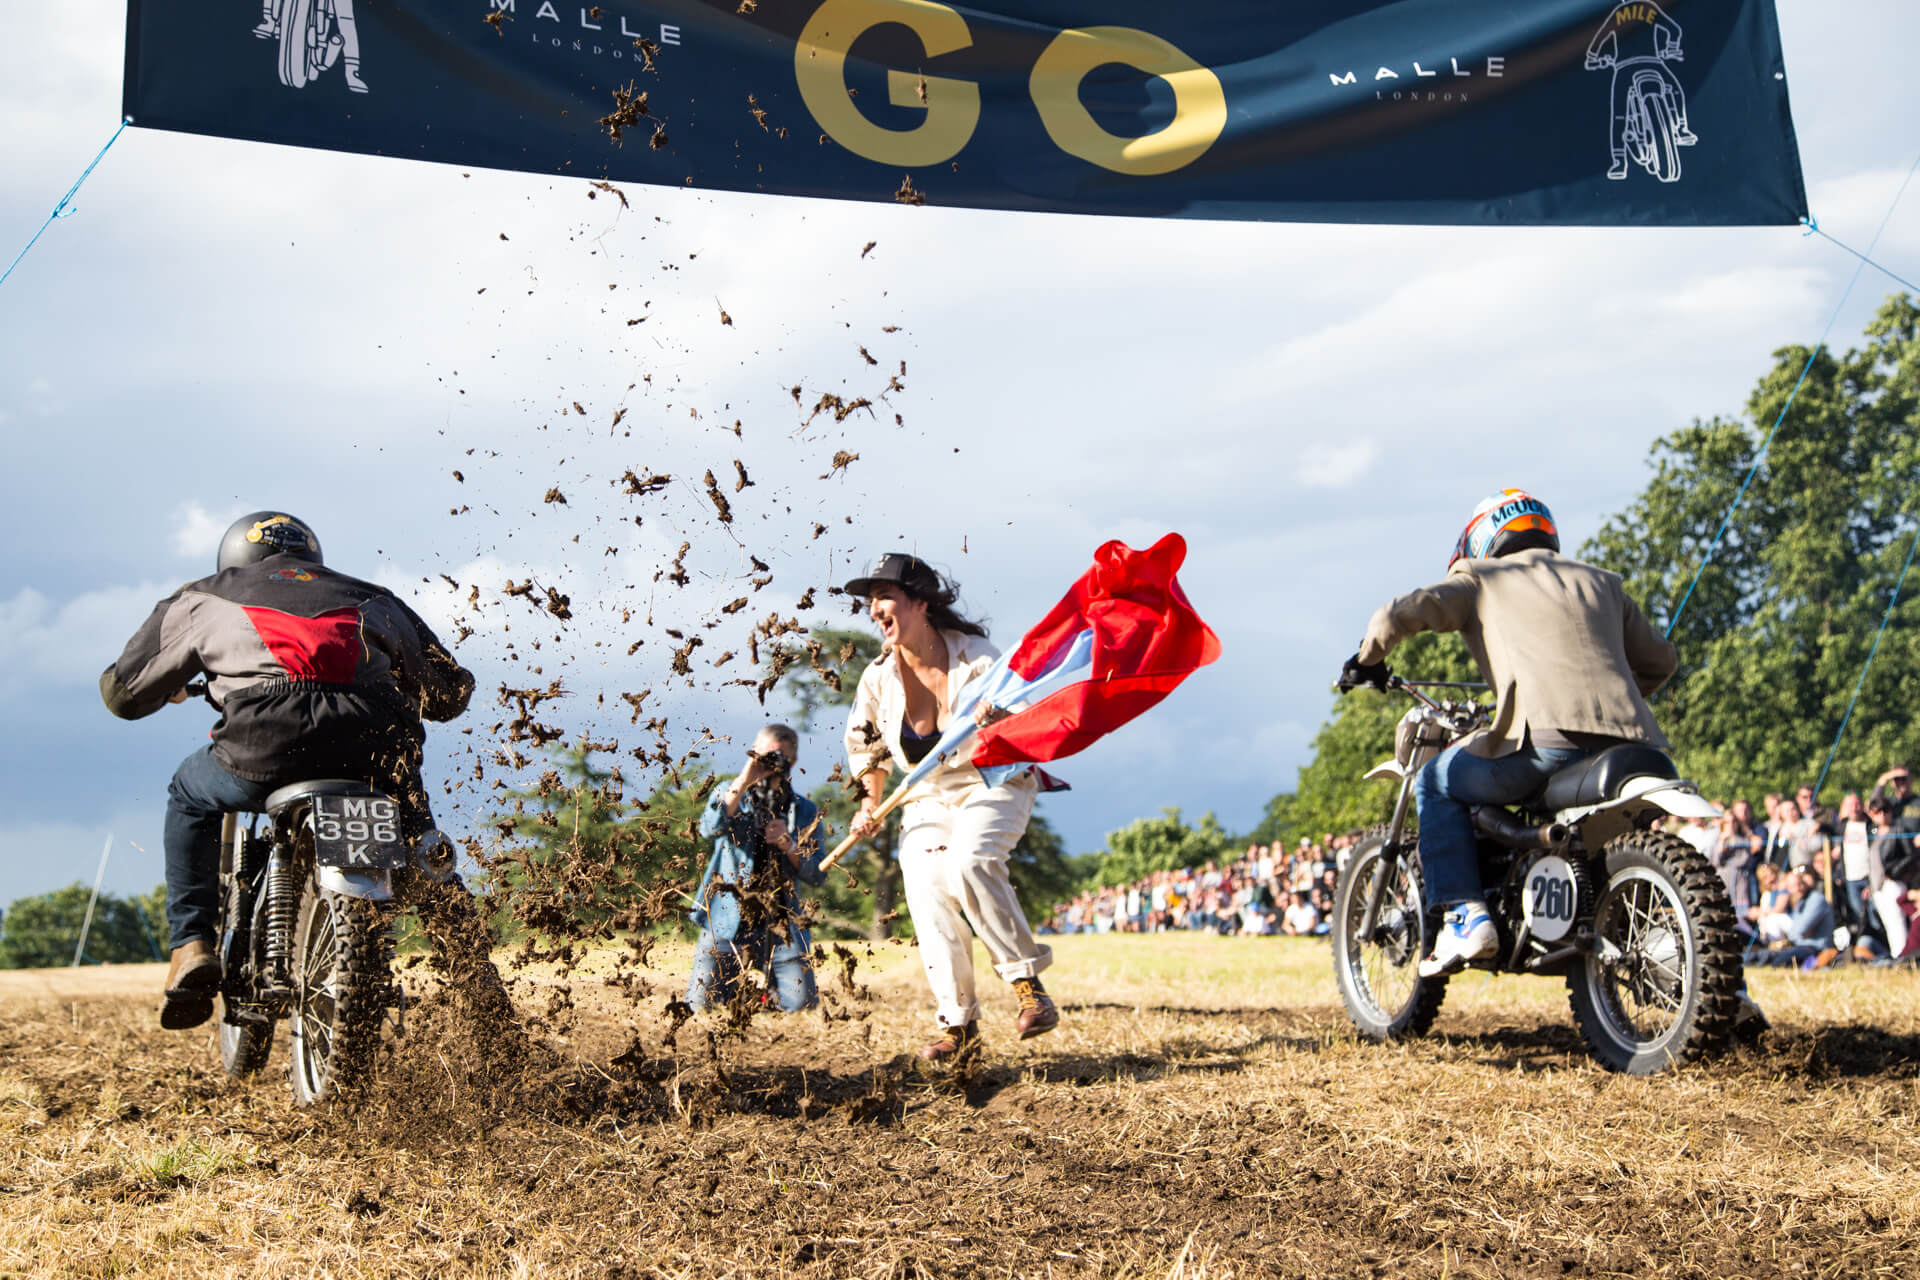 Malle Mile, The Mile, Event, Motorcycle, Richard, Summer, WeAreShuffle, Agency, Photography, Film, Production, Malle London, Triumph, Deus, Flag, Steward, Biker, Mud